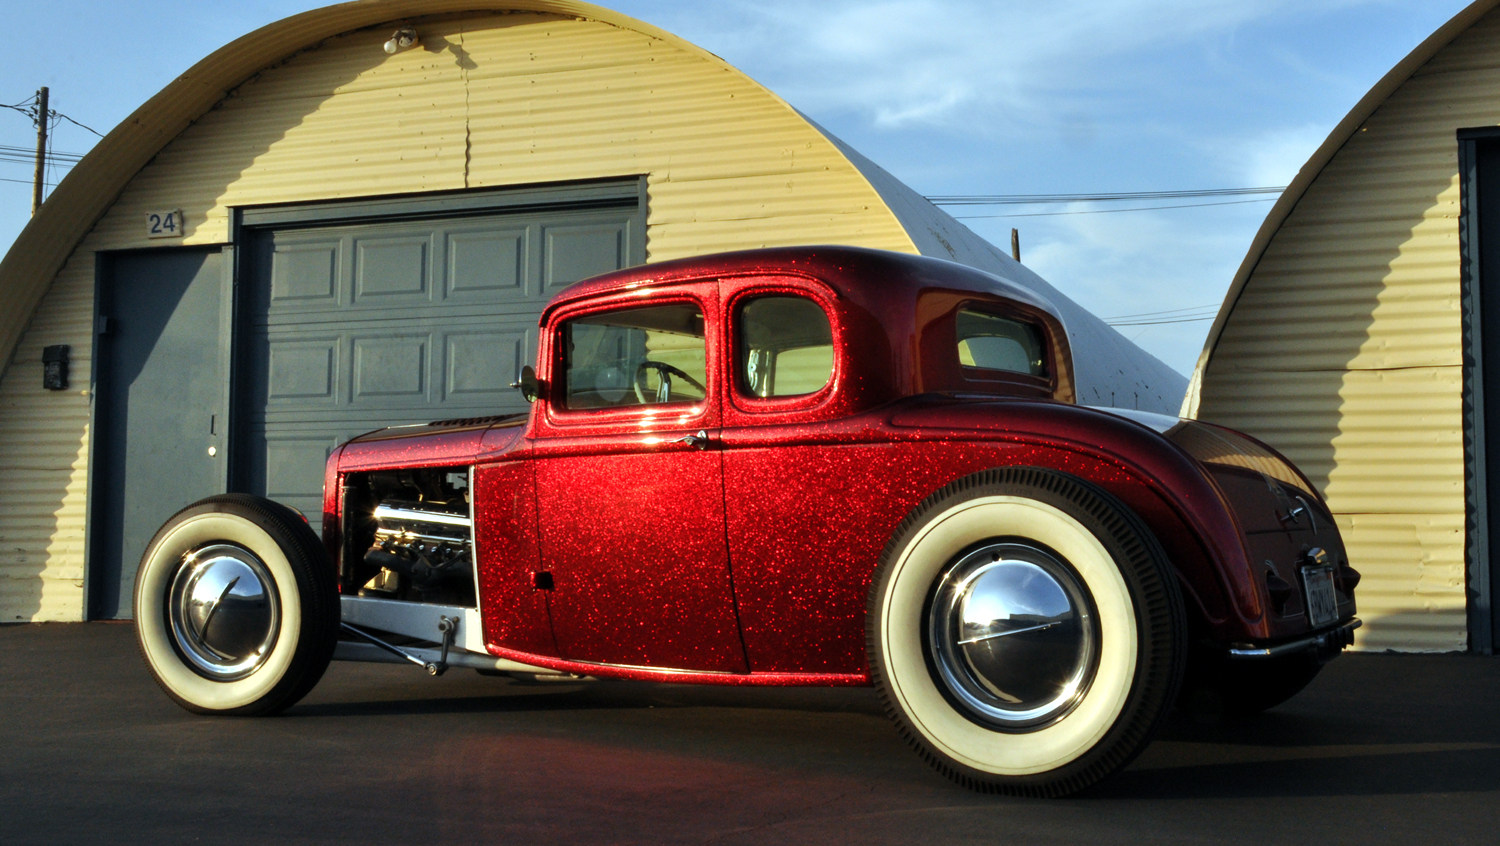 1932 Ford 5-window magazine project hot rod | The H.A.M.B.